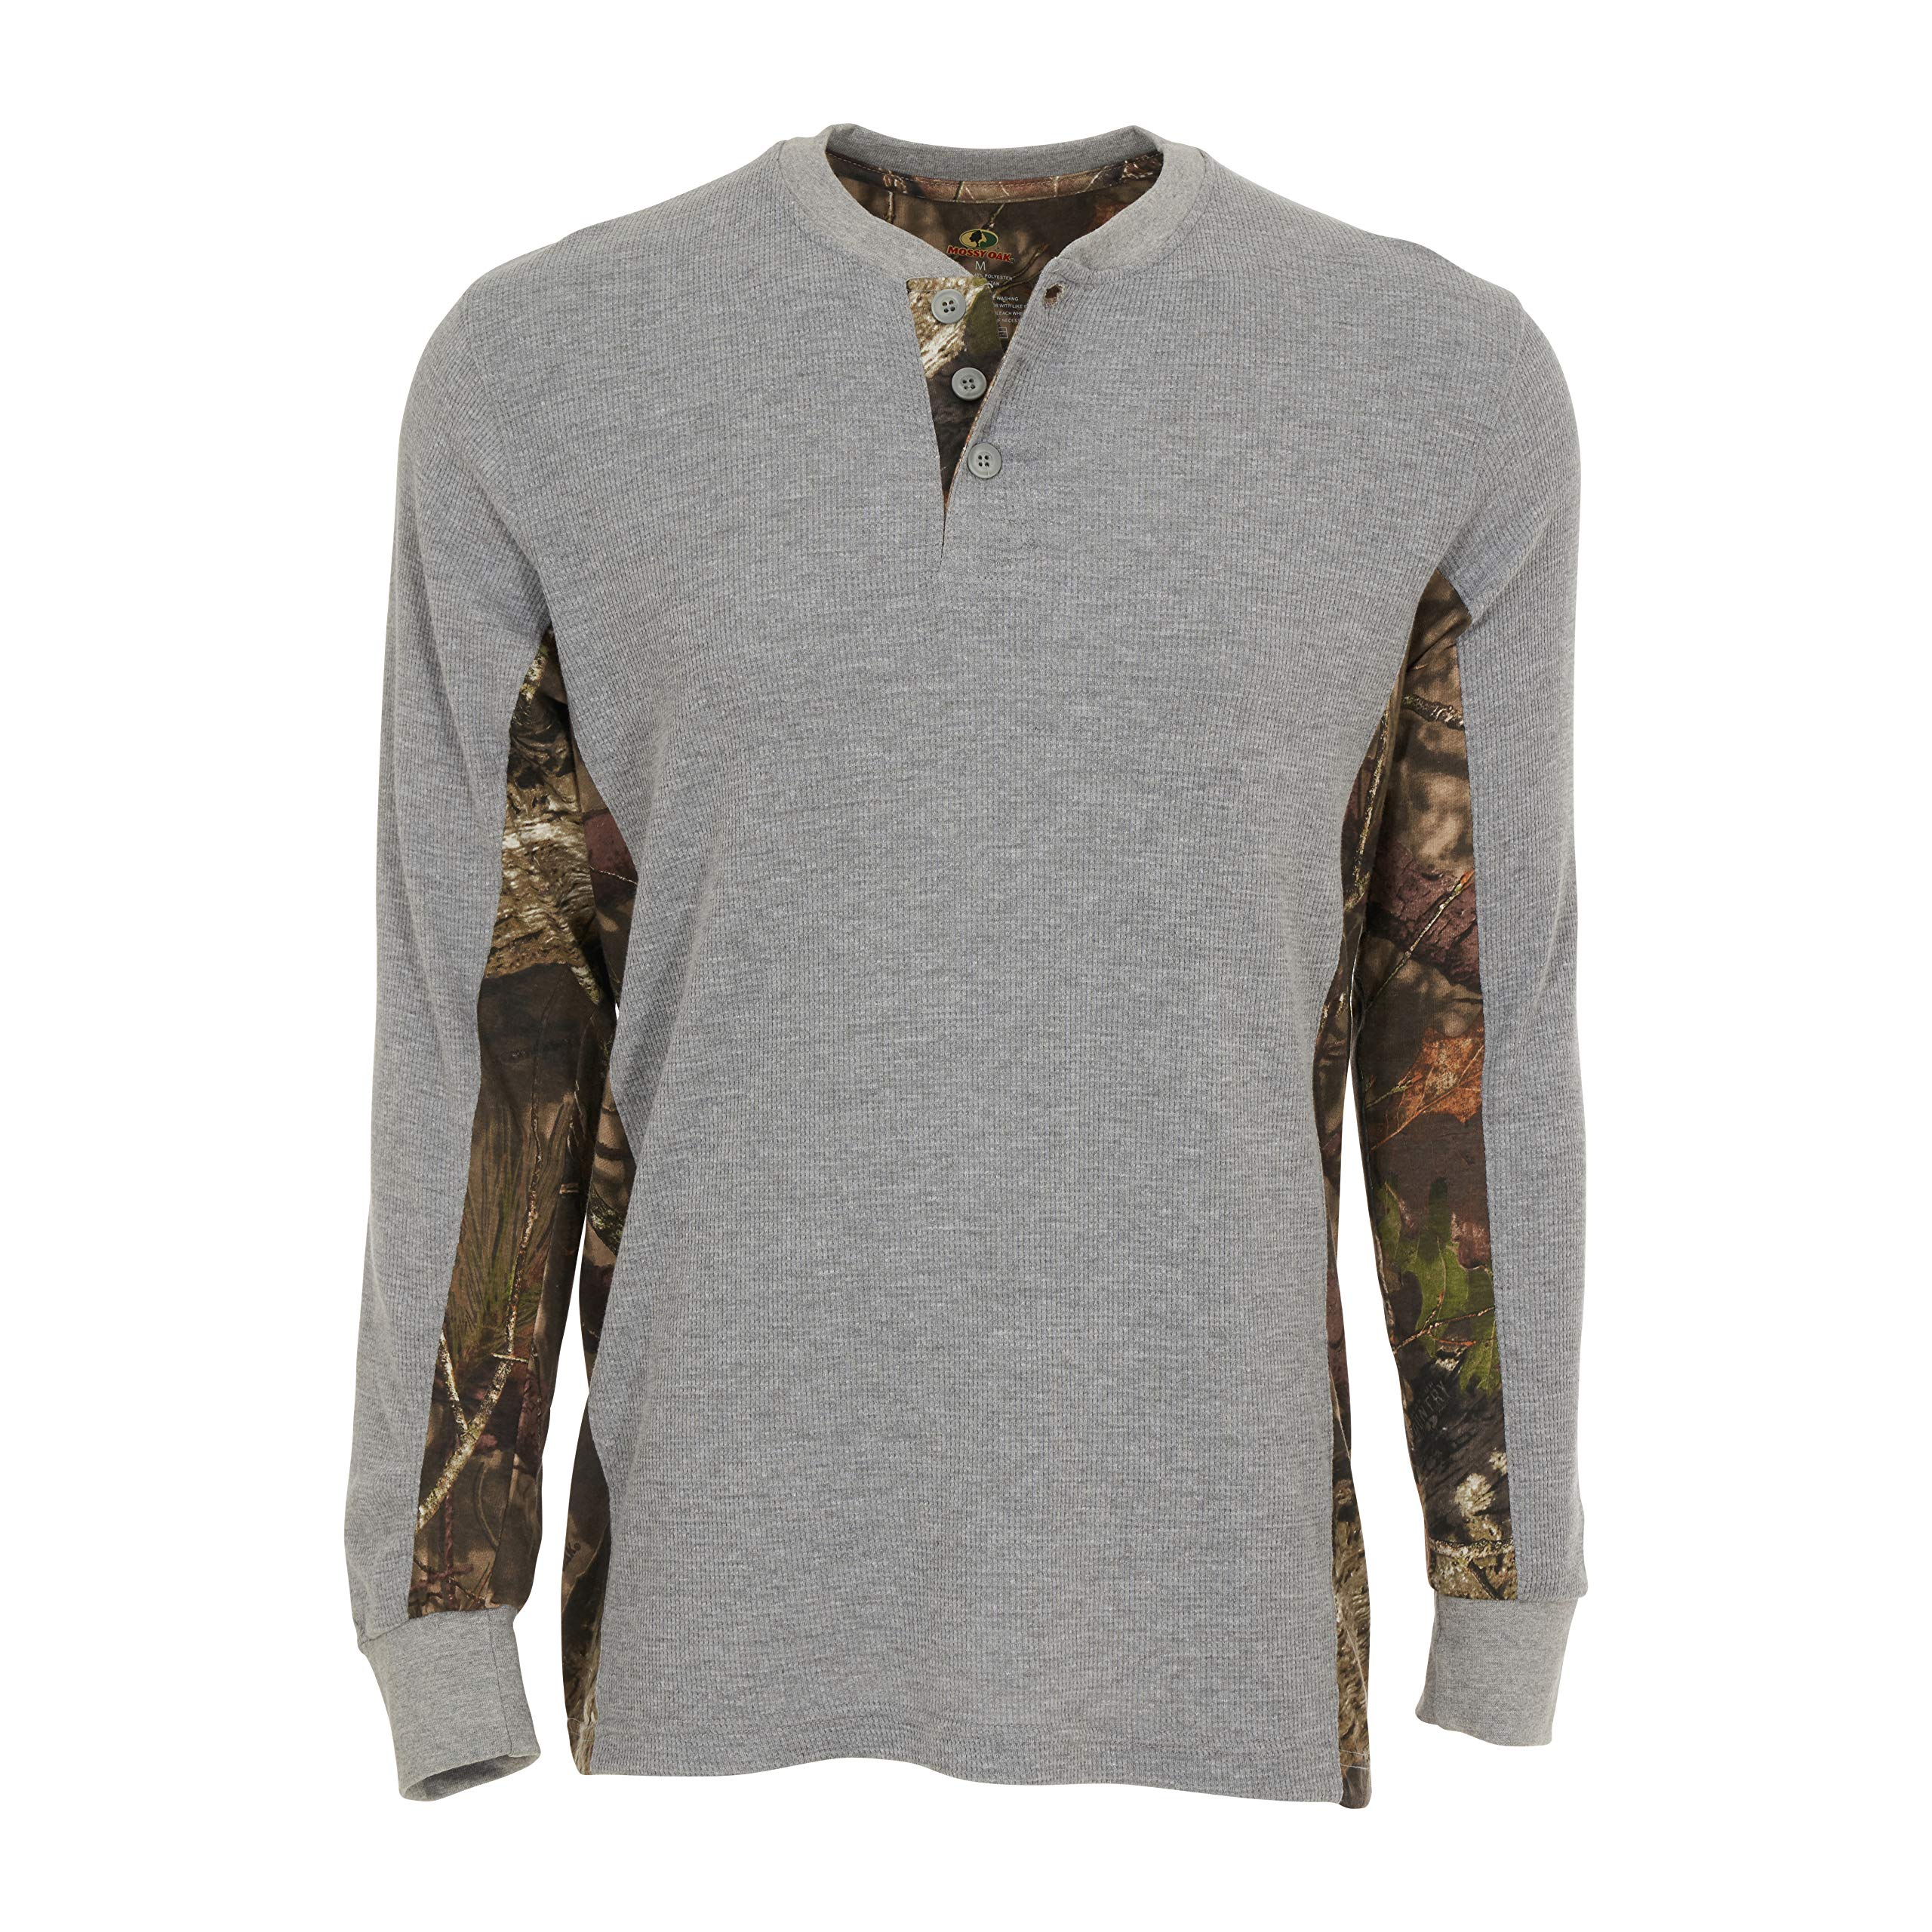 Mossy Oak Camo Mens Thermal Long Sleeve Shirt Waffle Knit Thermal Crew Neck with Buttons